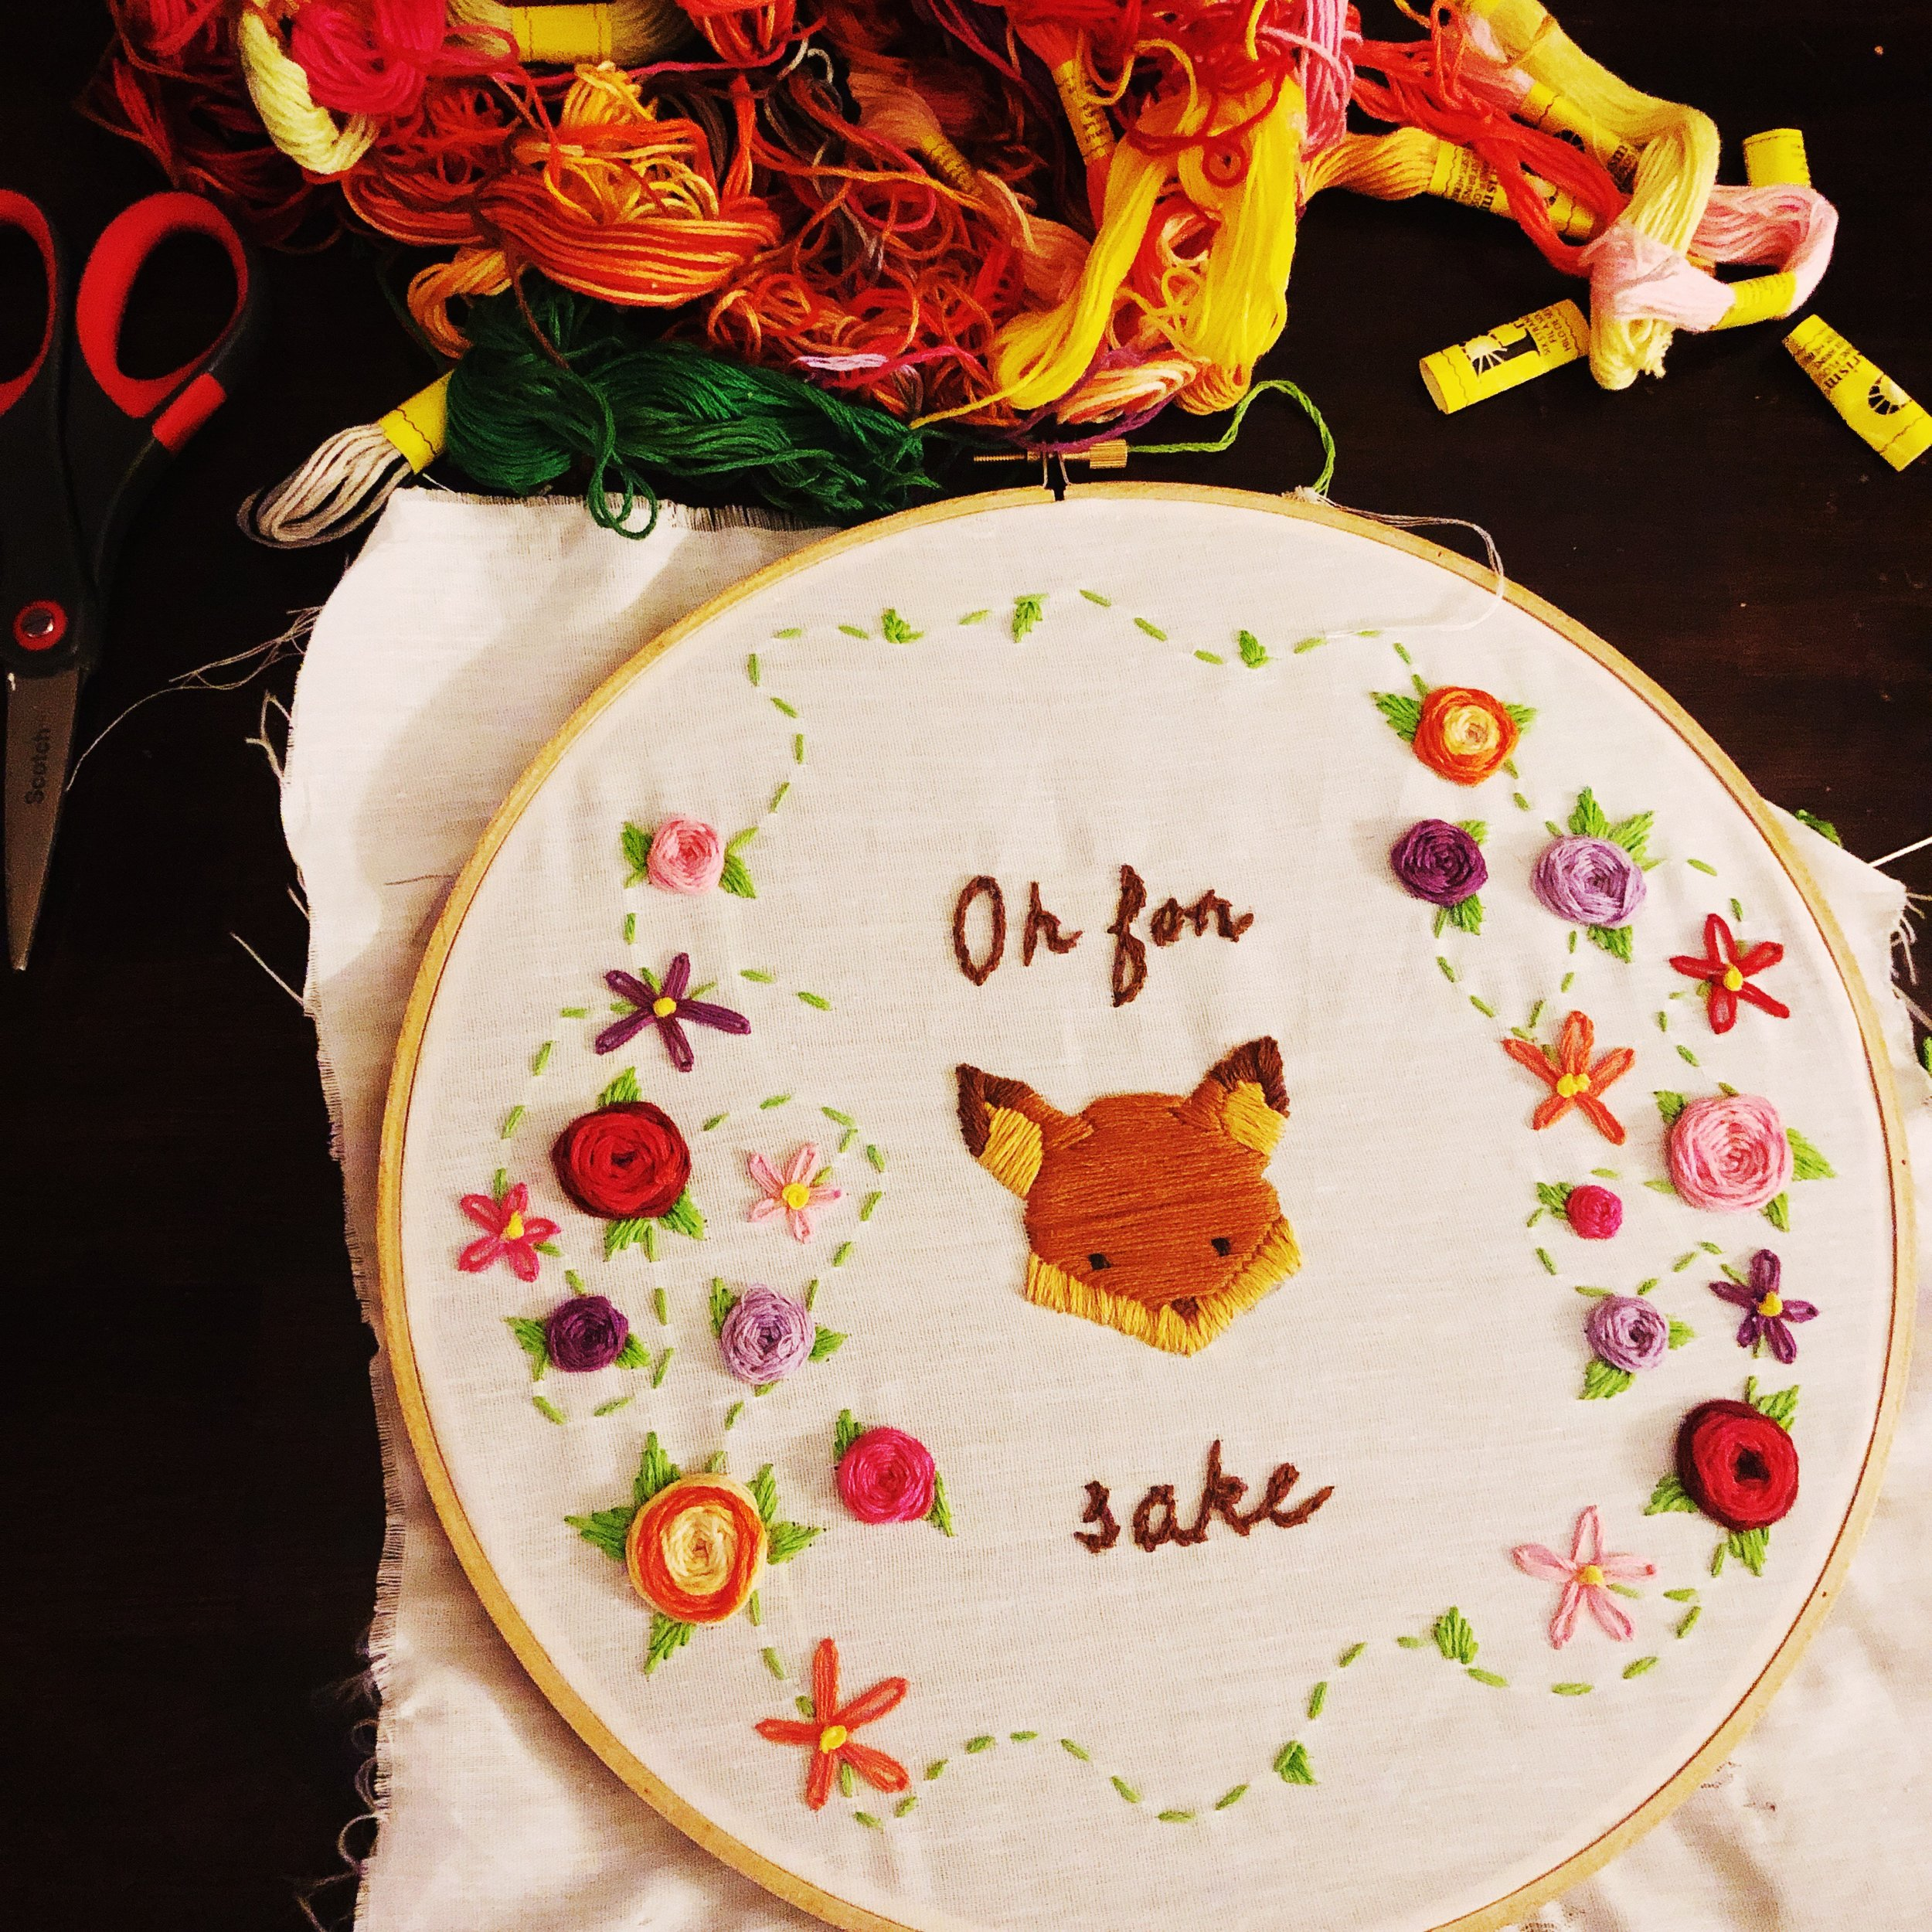 $45 - Embroidery  Learn embroidery and make a wall art piece.